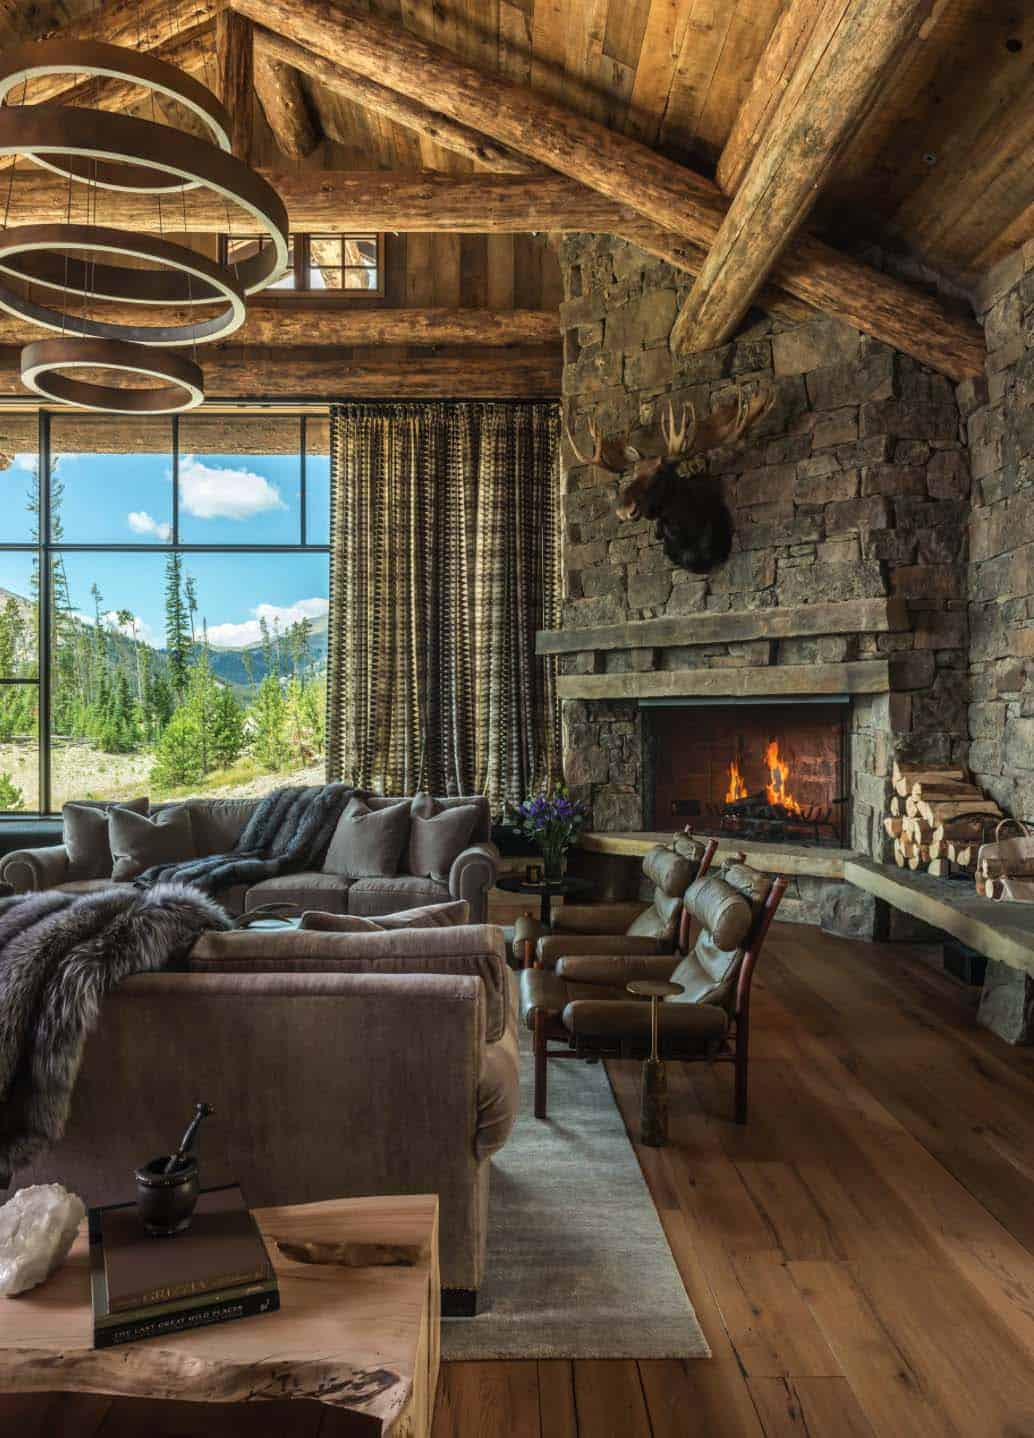 Modern Rustic Decor Living Rooms: Rustic Chic Mountain Home In The Rocky Mountain Foothills